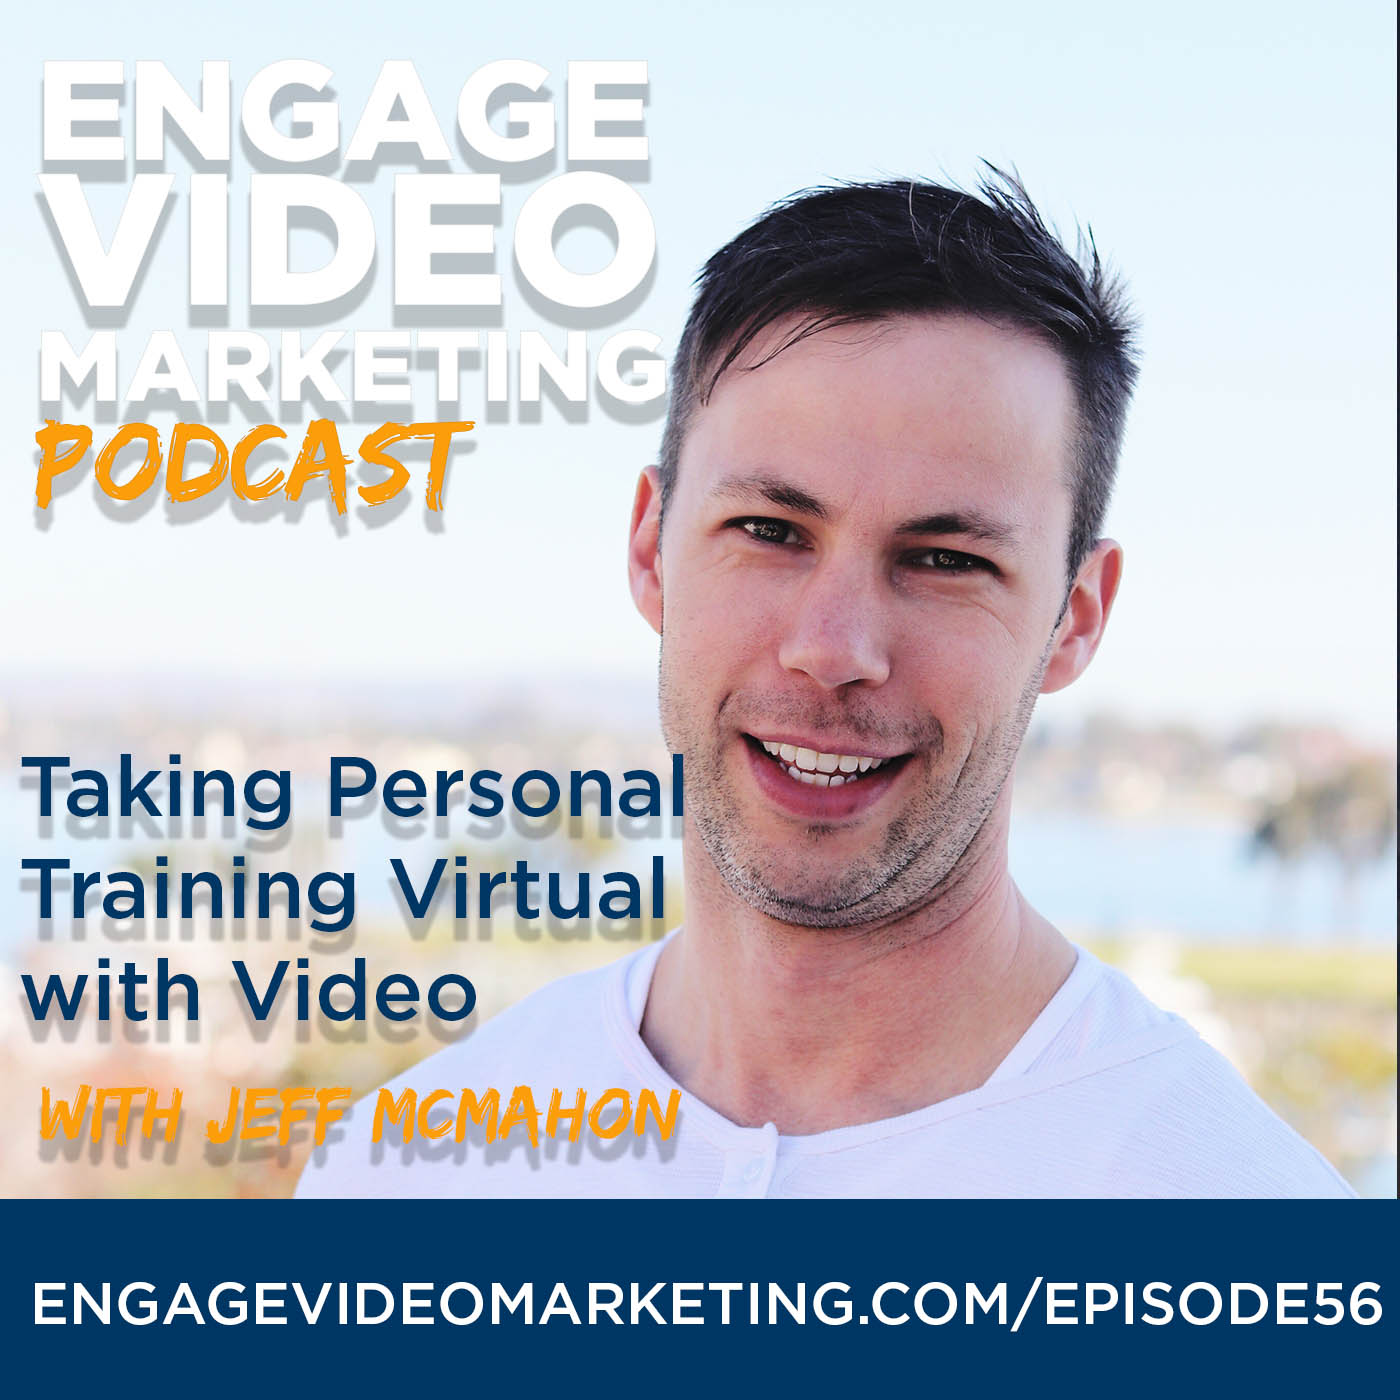 Taking Personal Training Virtual with Video with Jeff McMahon